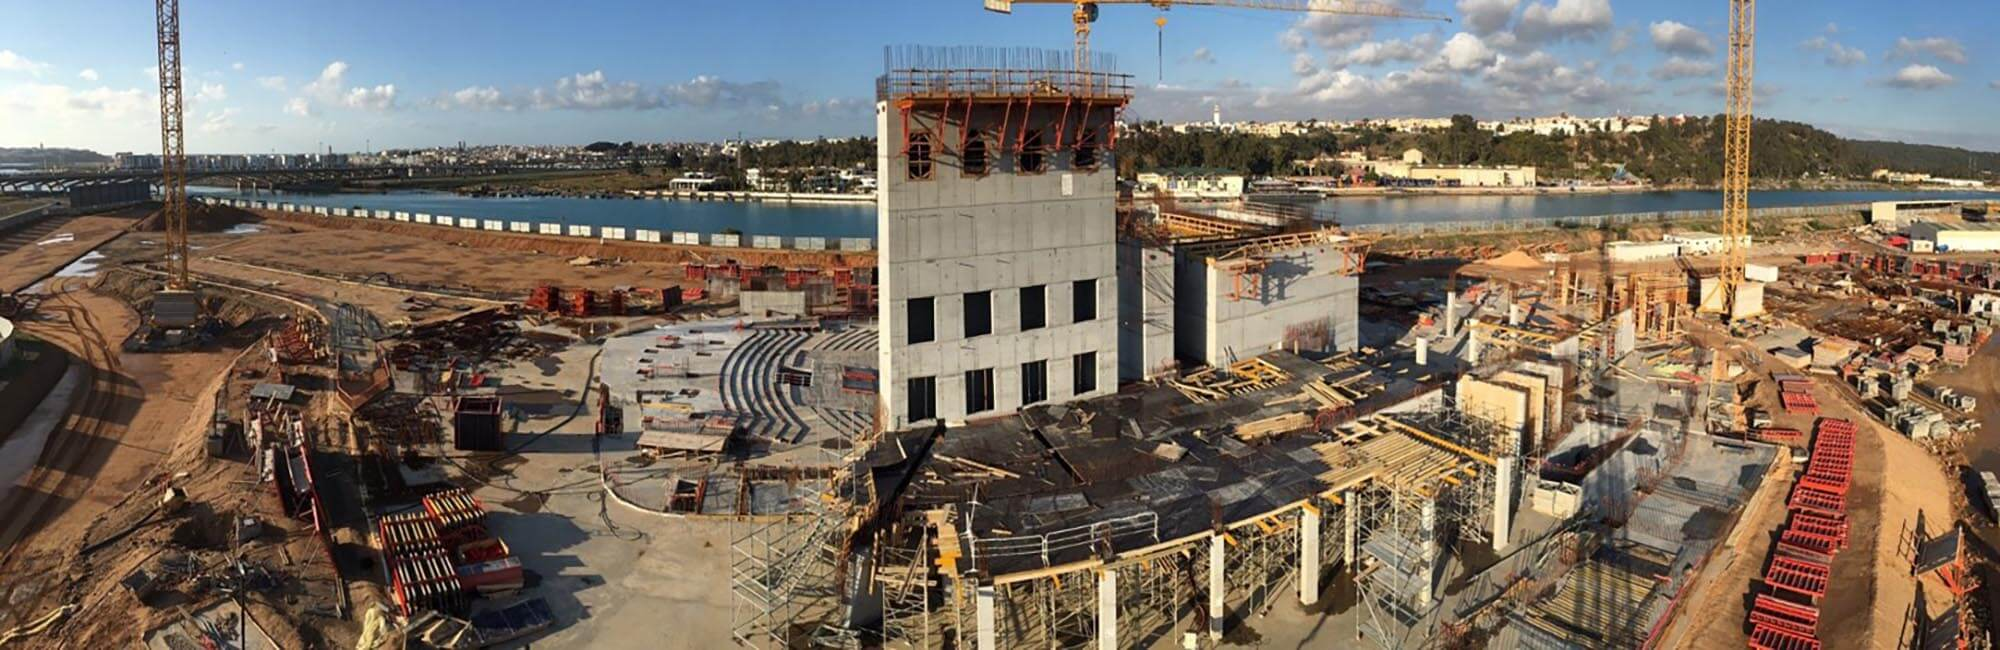 theatre rabat construction